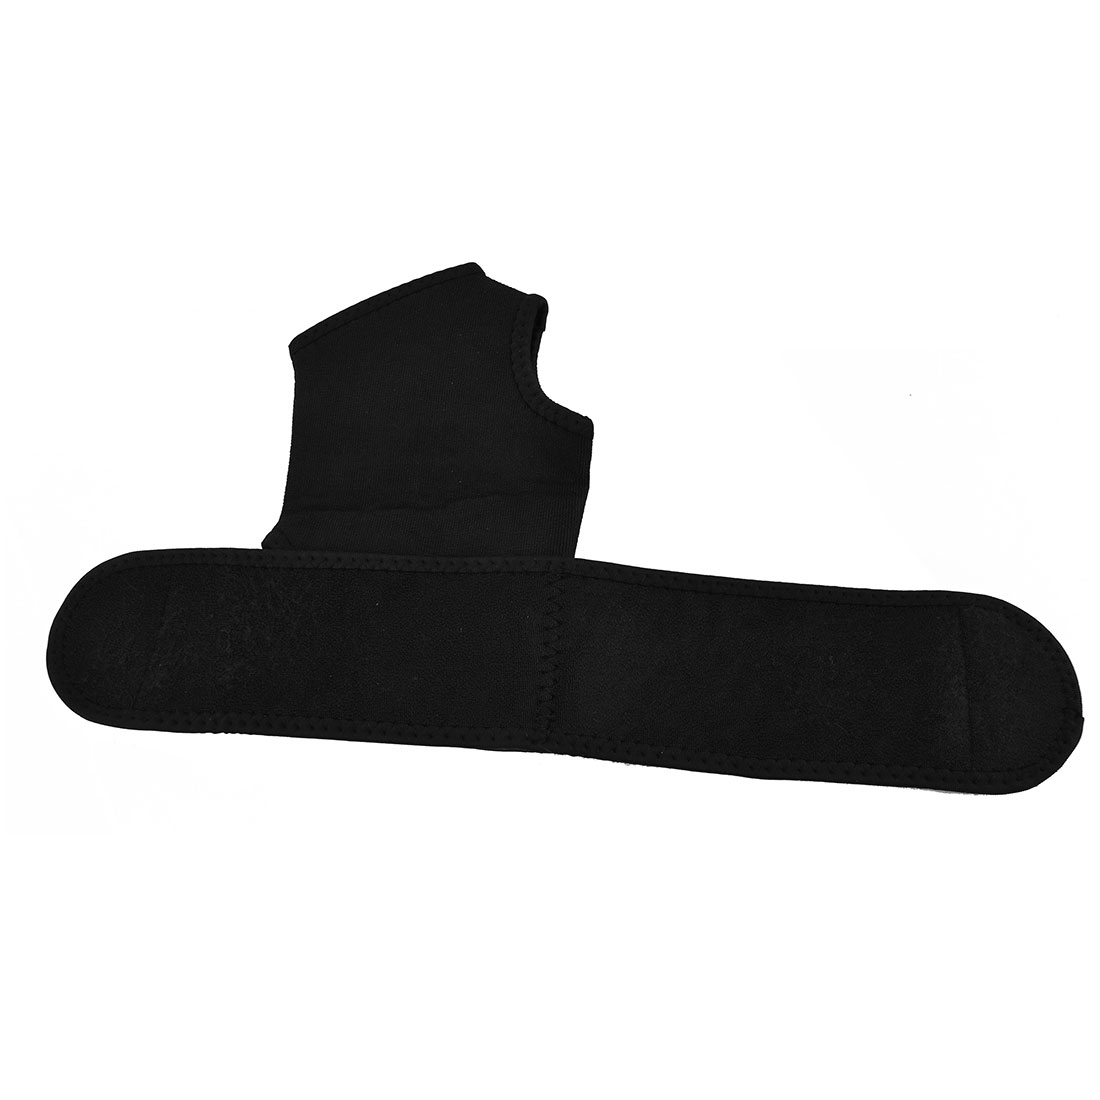 Outdoor Adjustable Sport Football Ankle Support Brace Wrap Protector Black